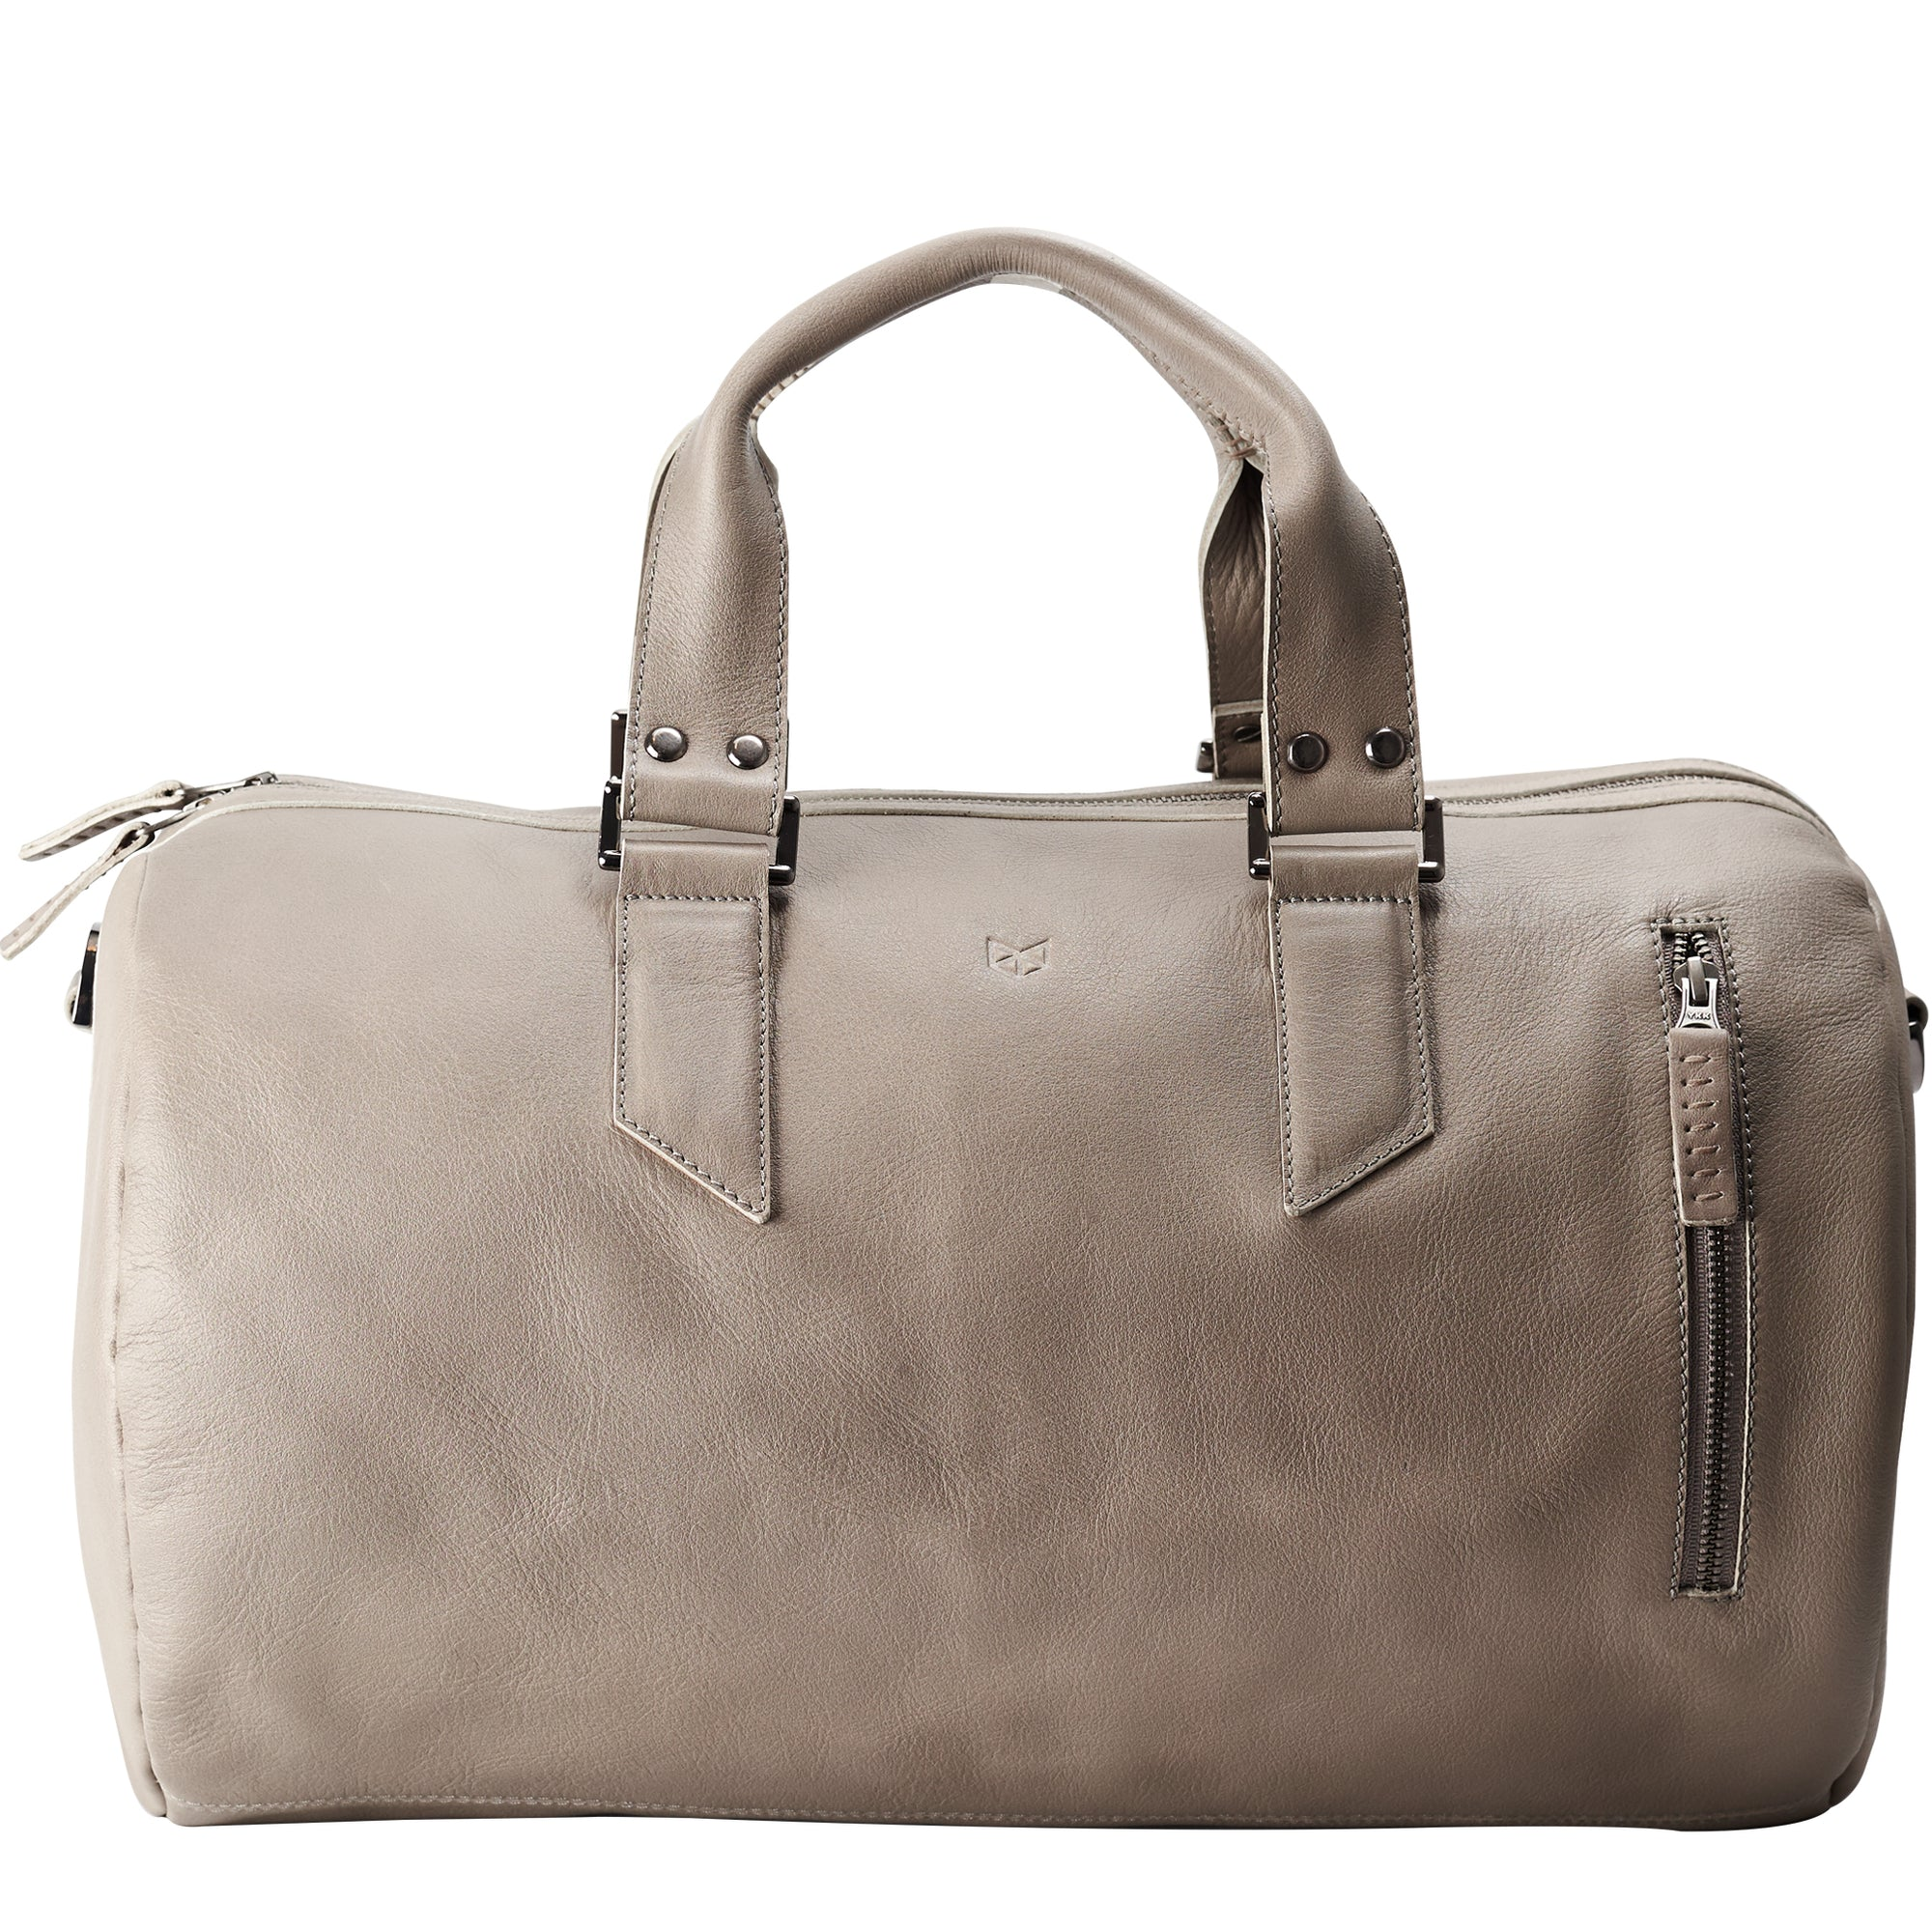 21b1ea83f75c1e handcrafted Grey leather duffle bag for men. Grey leather carryall bag.